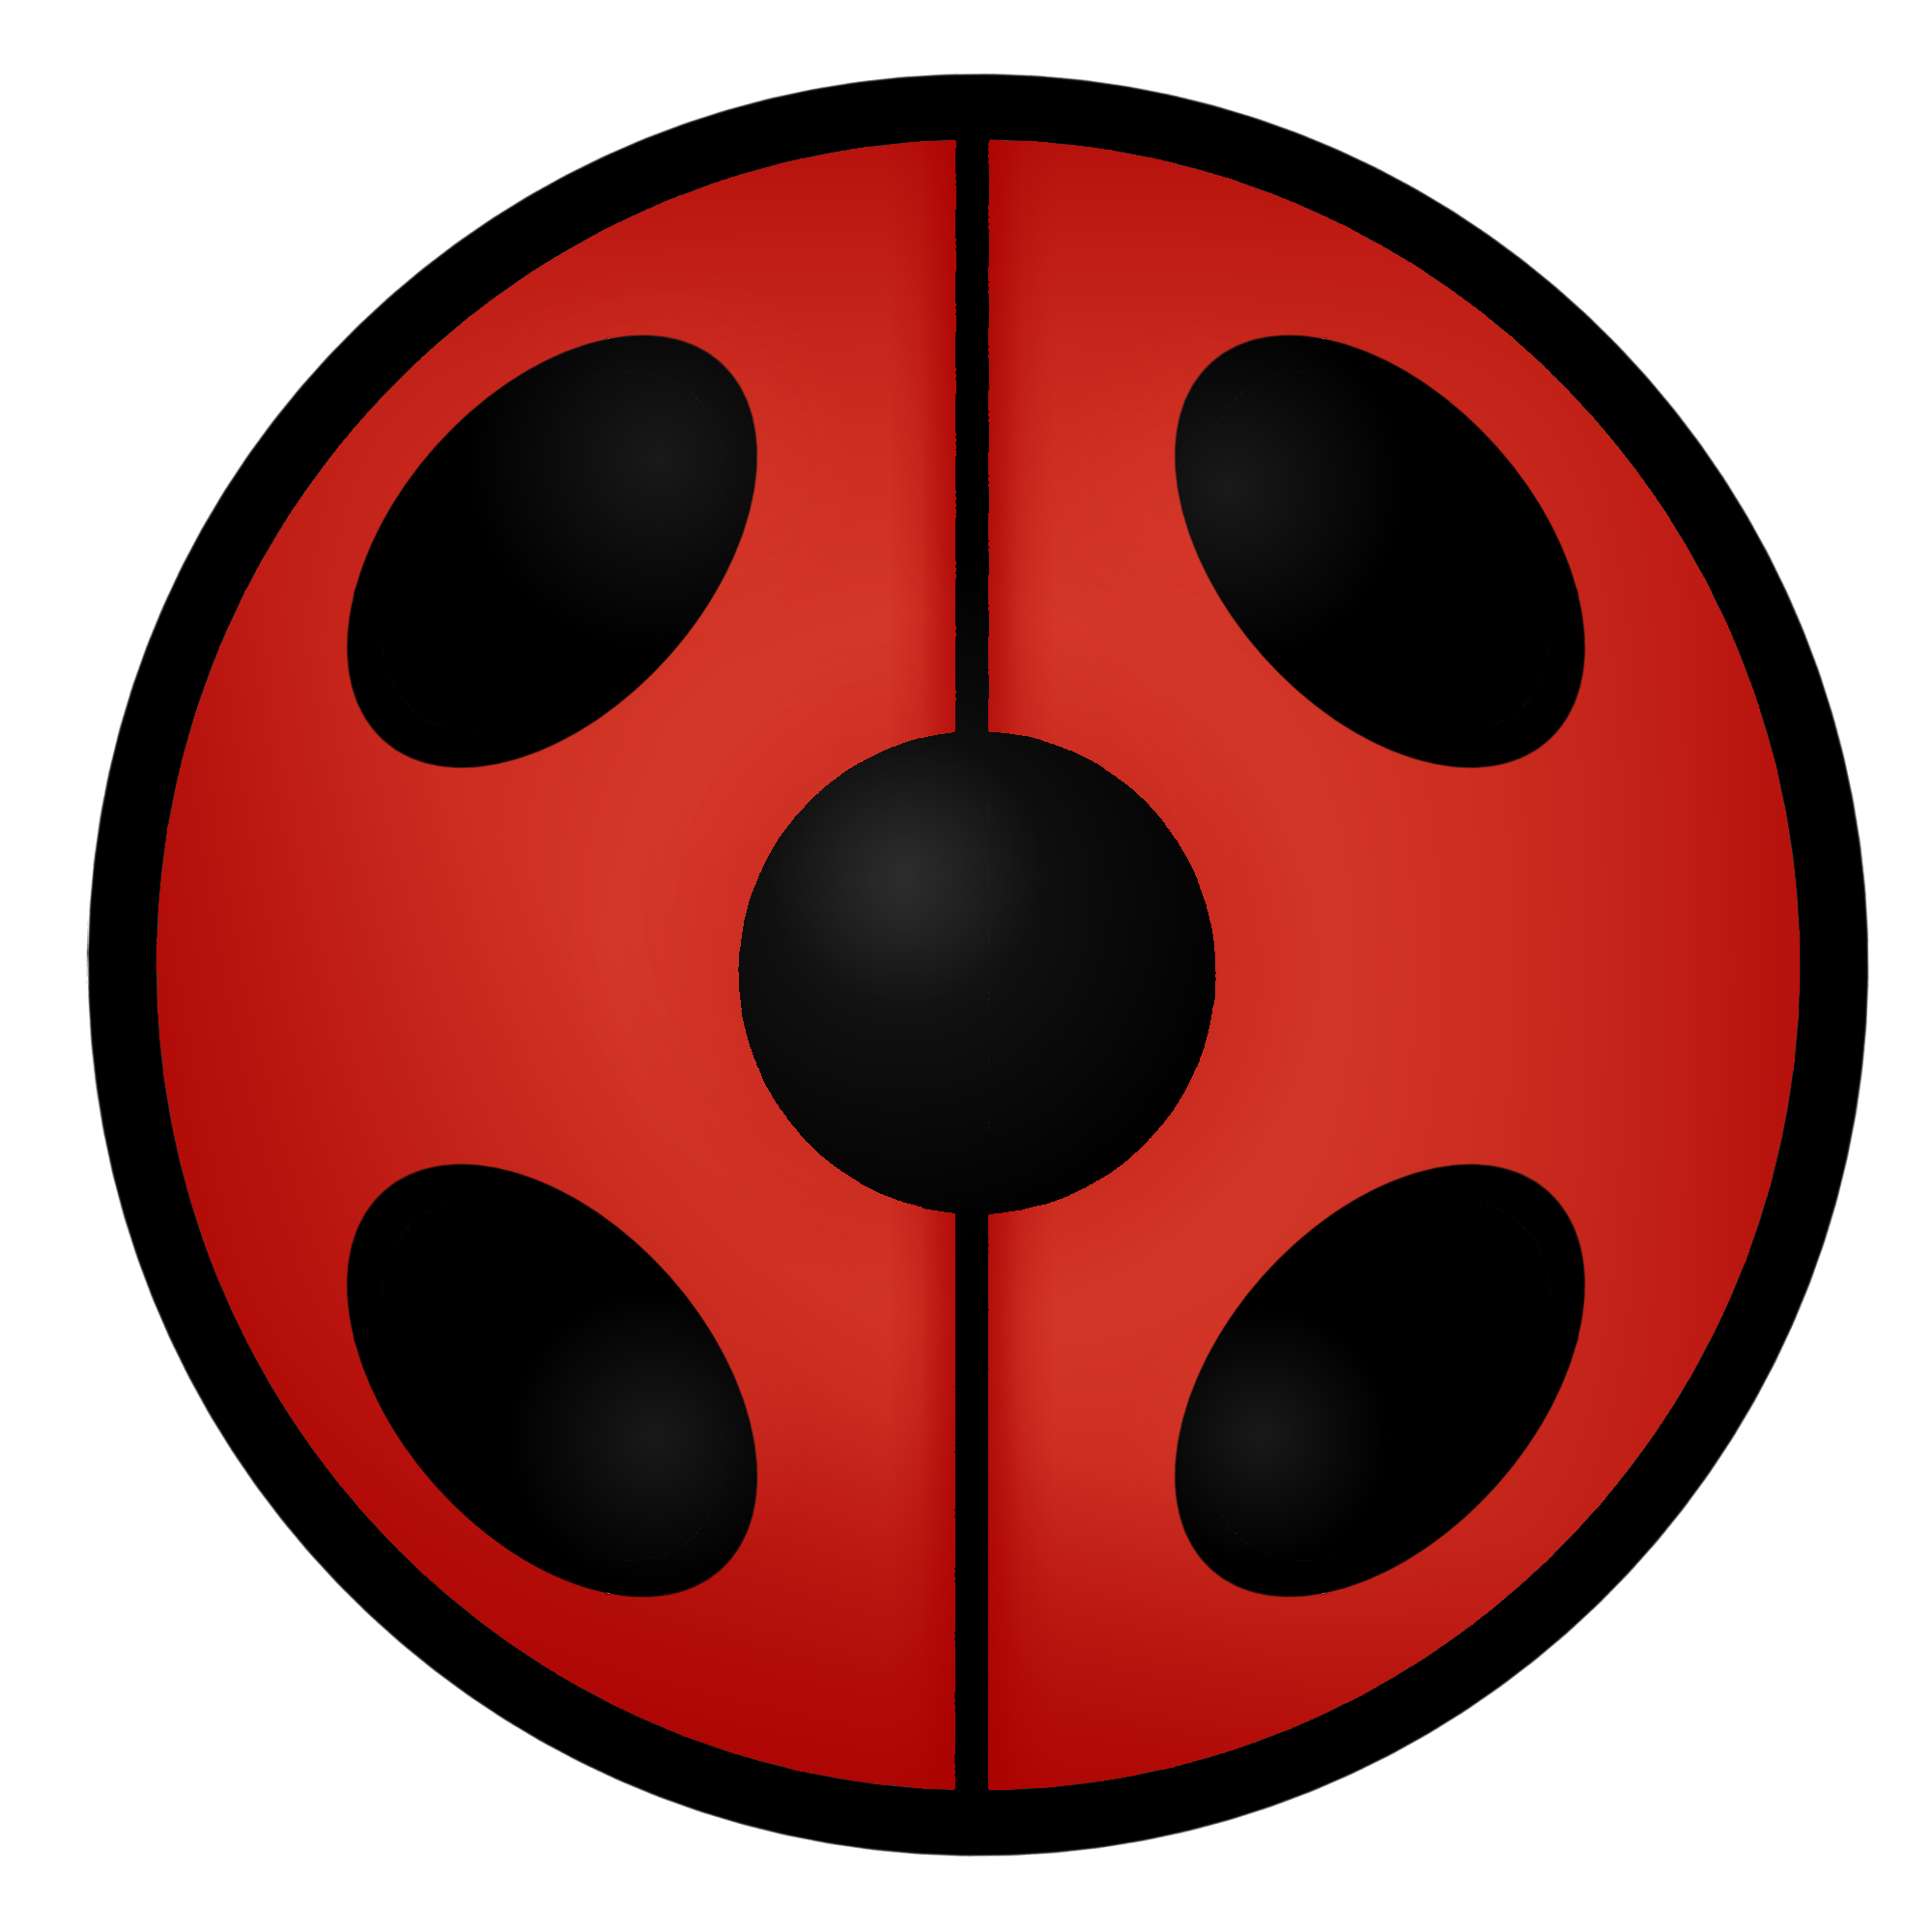 Ladybug logo png. Miraculous confessions